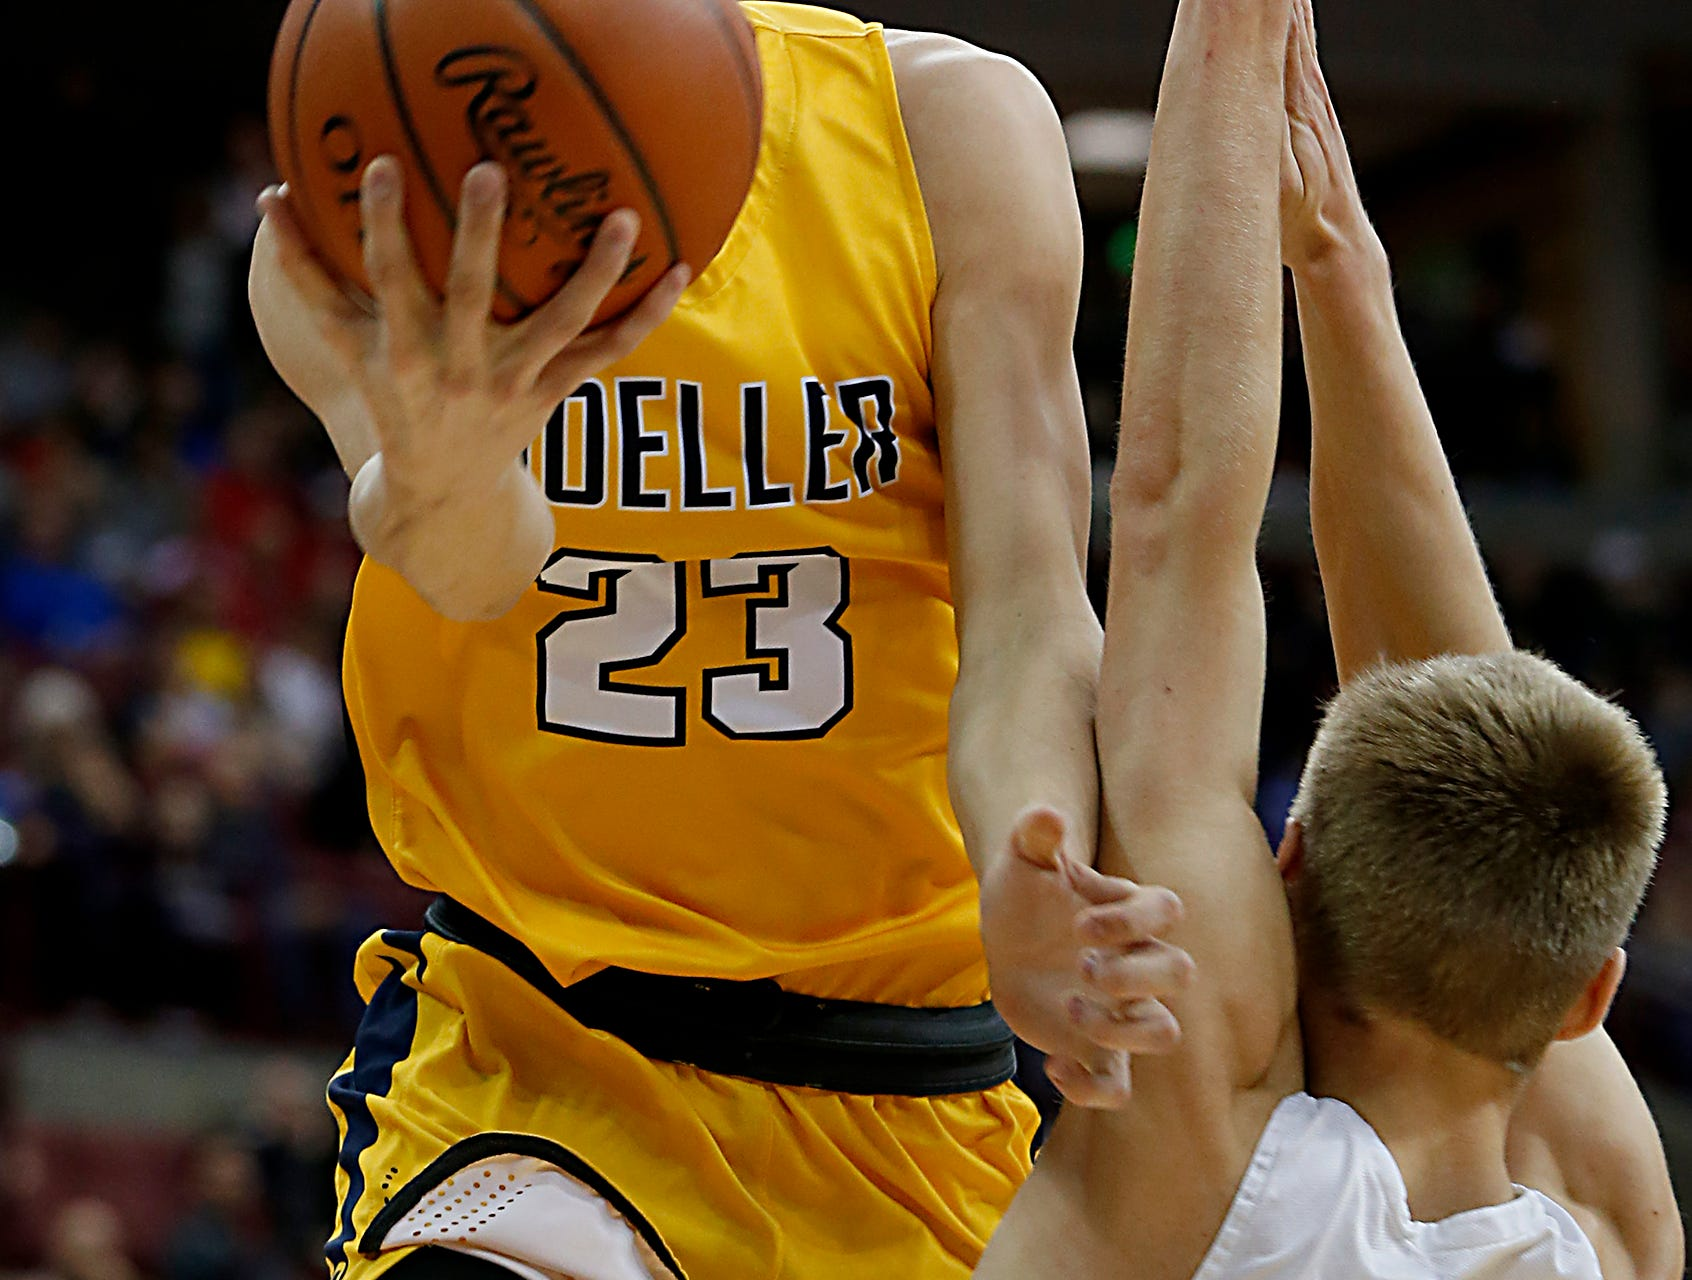 Moeller forward Will McCracken drives to the hoop against St. Edward guard Grant Huffman during their Division I semifinal at the Schottenstein Center in Columbus Friday, March 22, 2019.